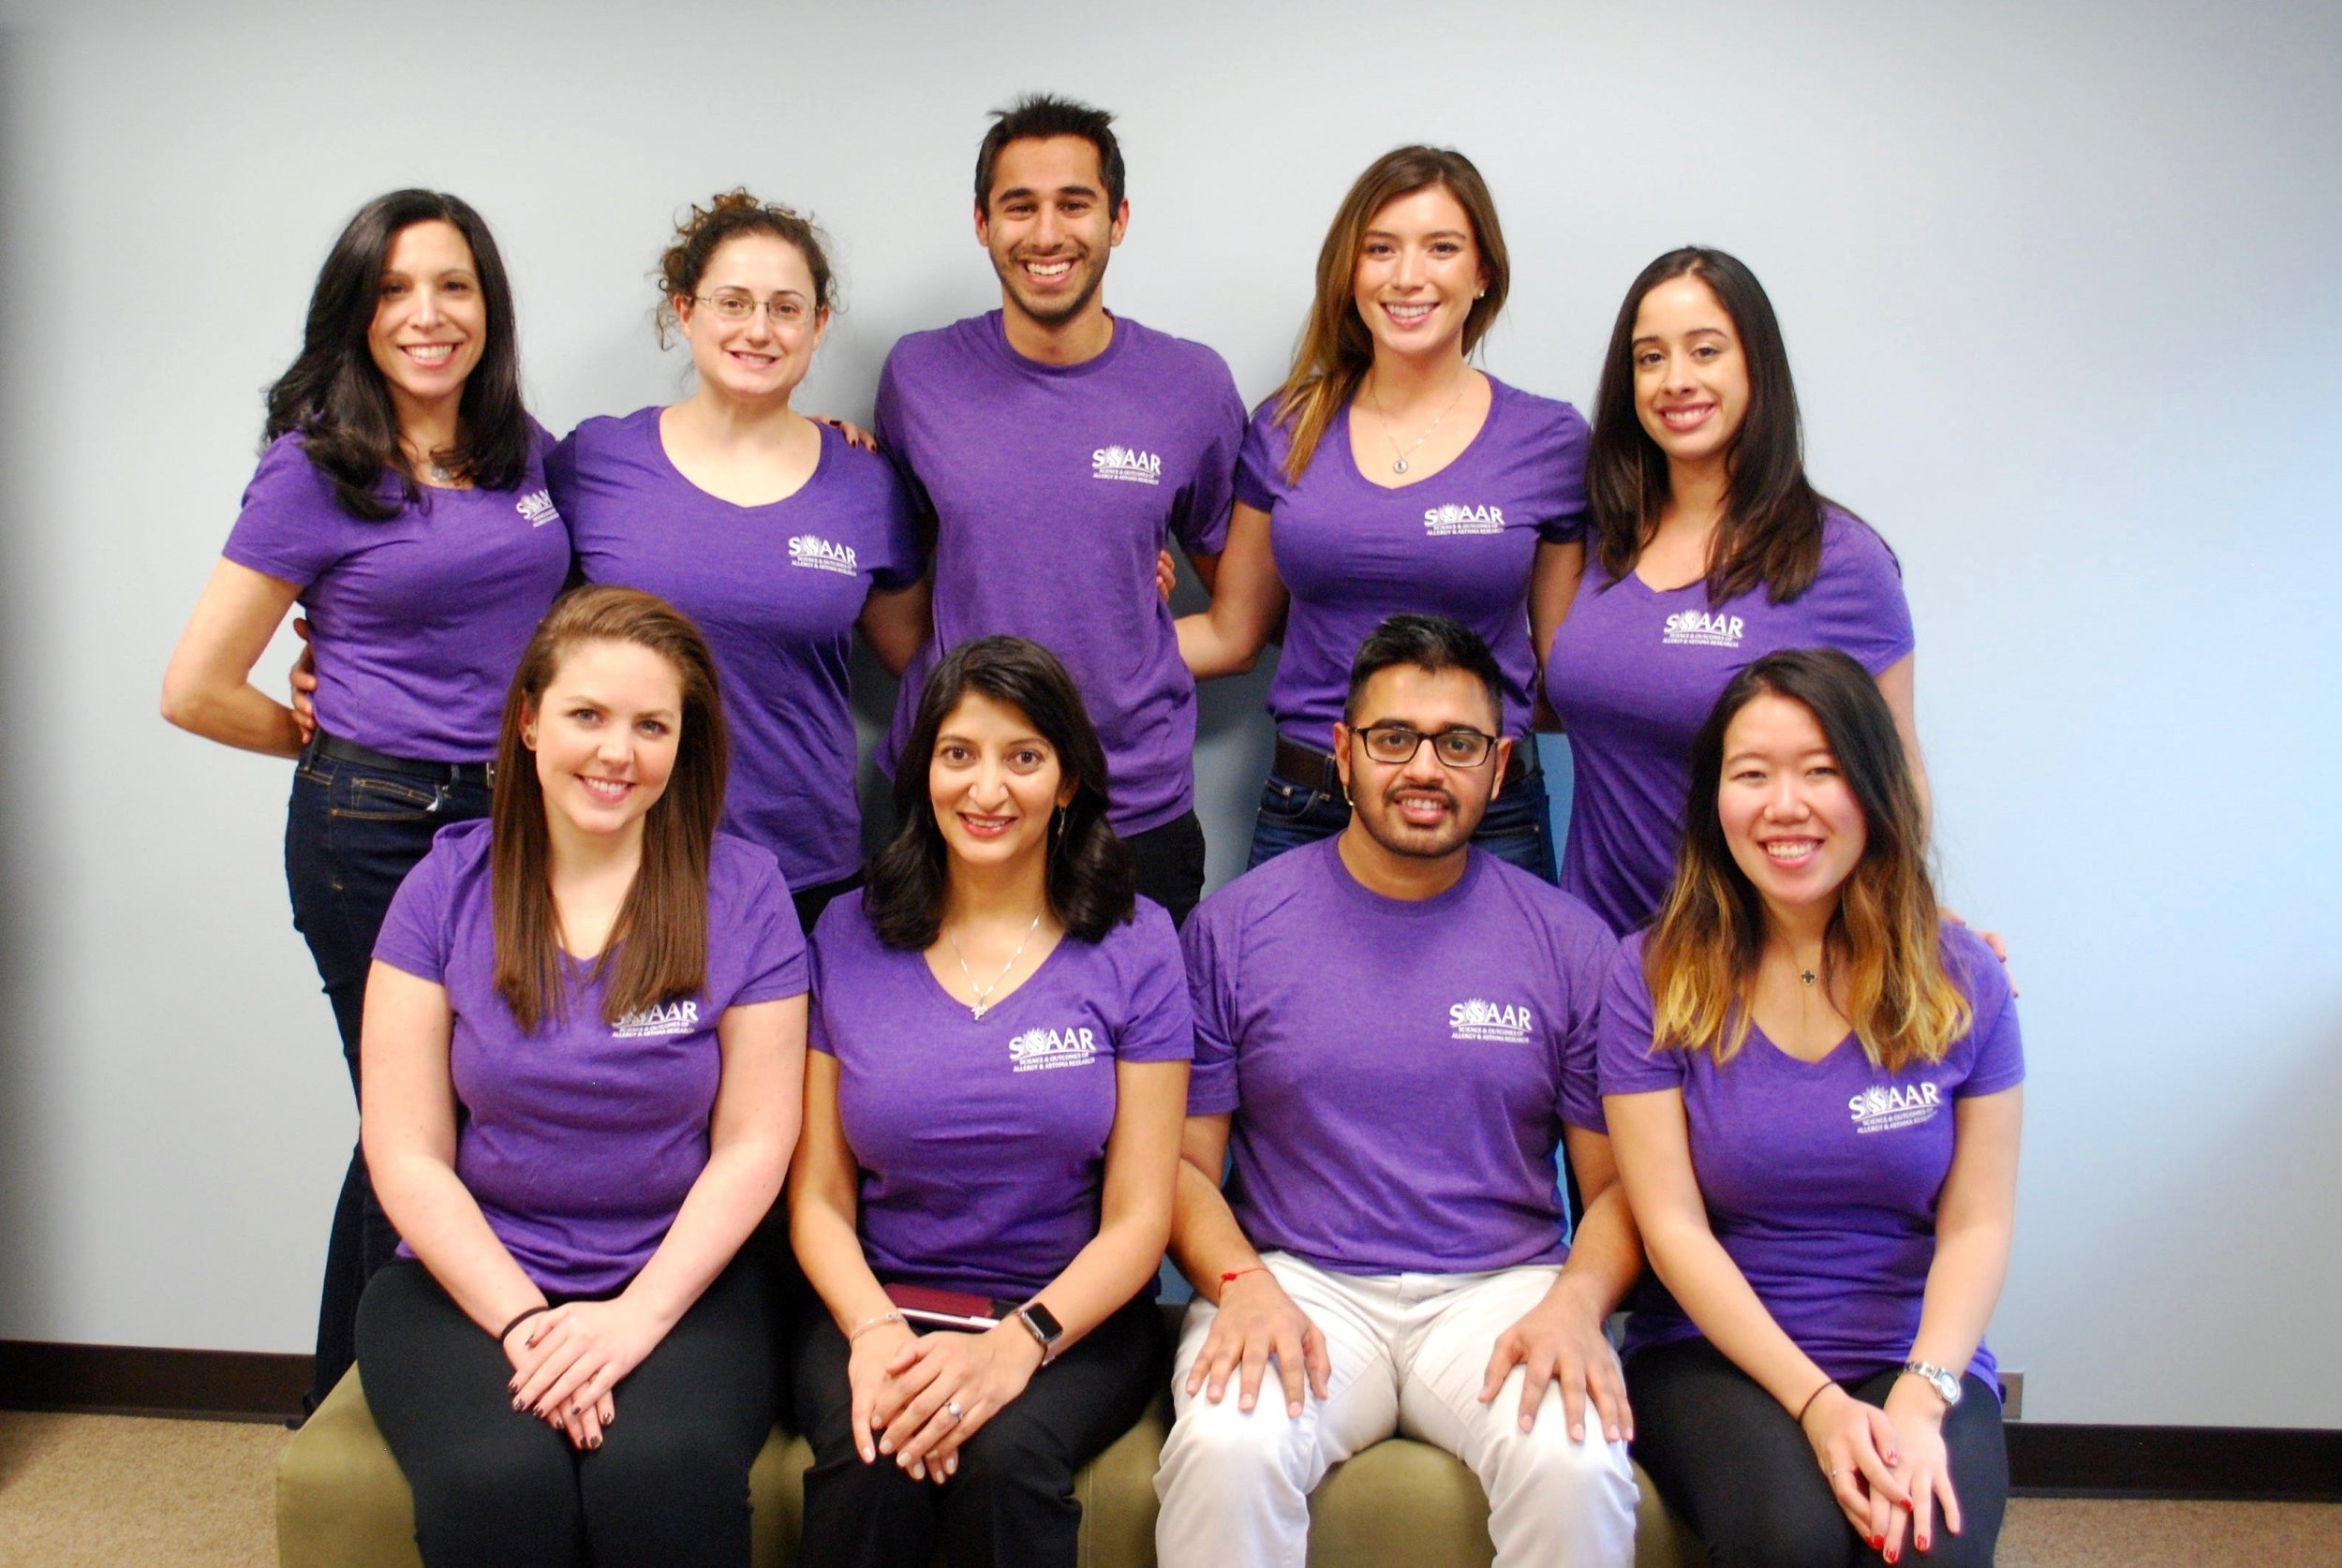 Dr. Gupta (second from the left on the bottom row) and her SOAAR research team (Science and Outcomes of Allergy and Asthma Research) at Northwestern University.